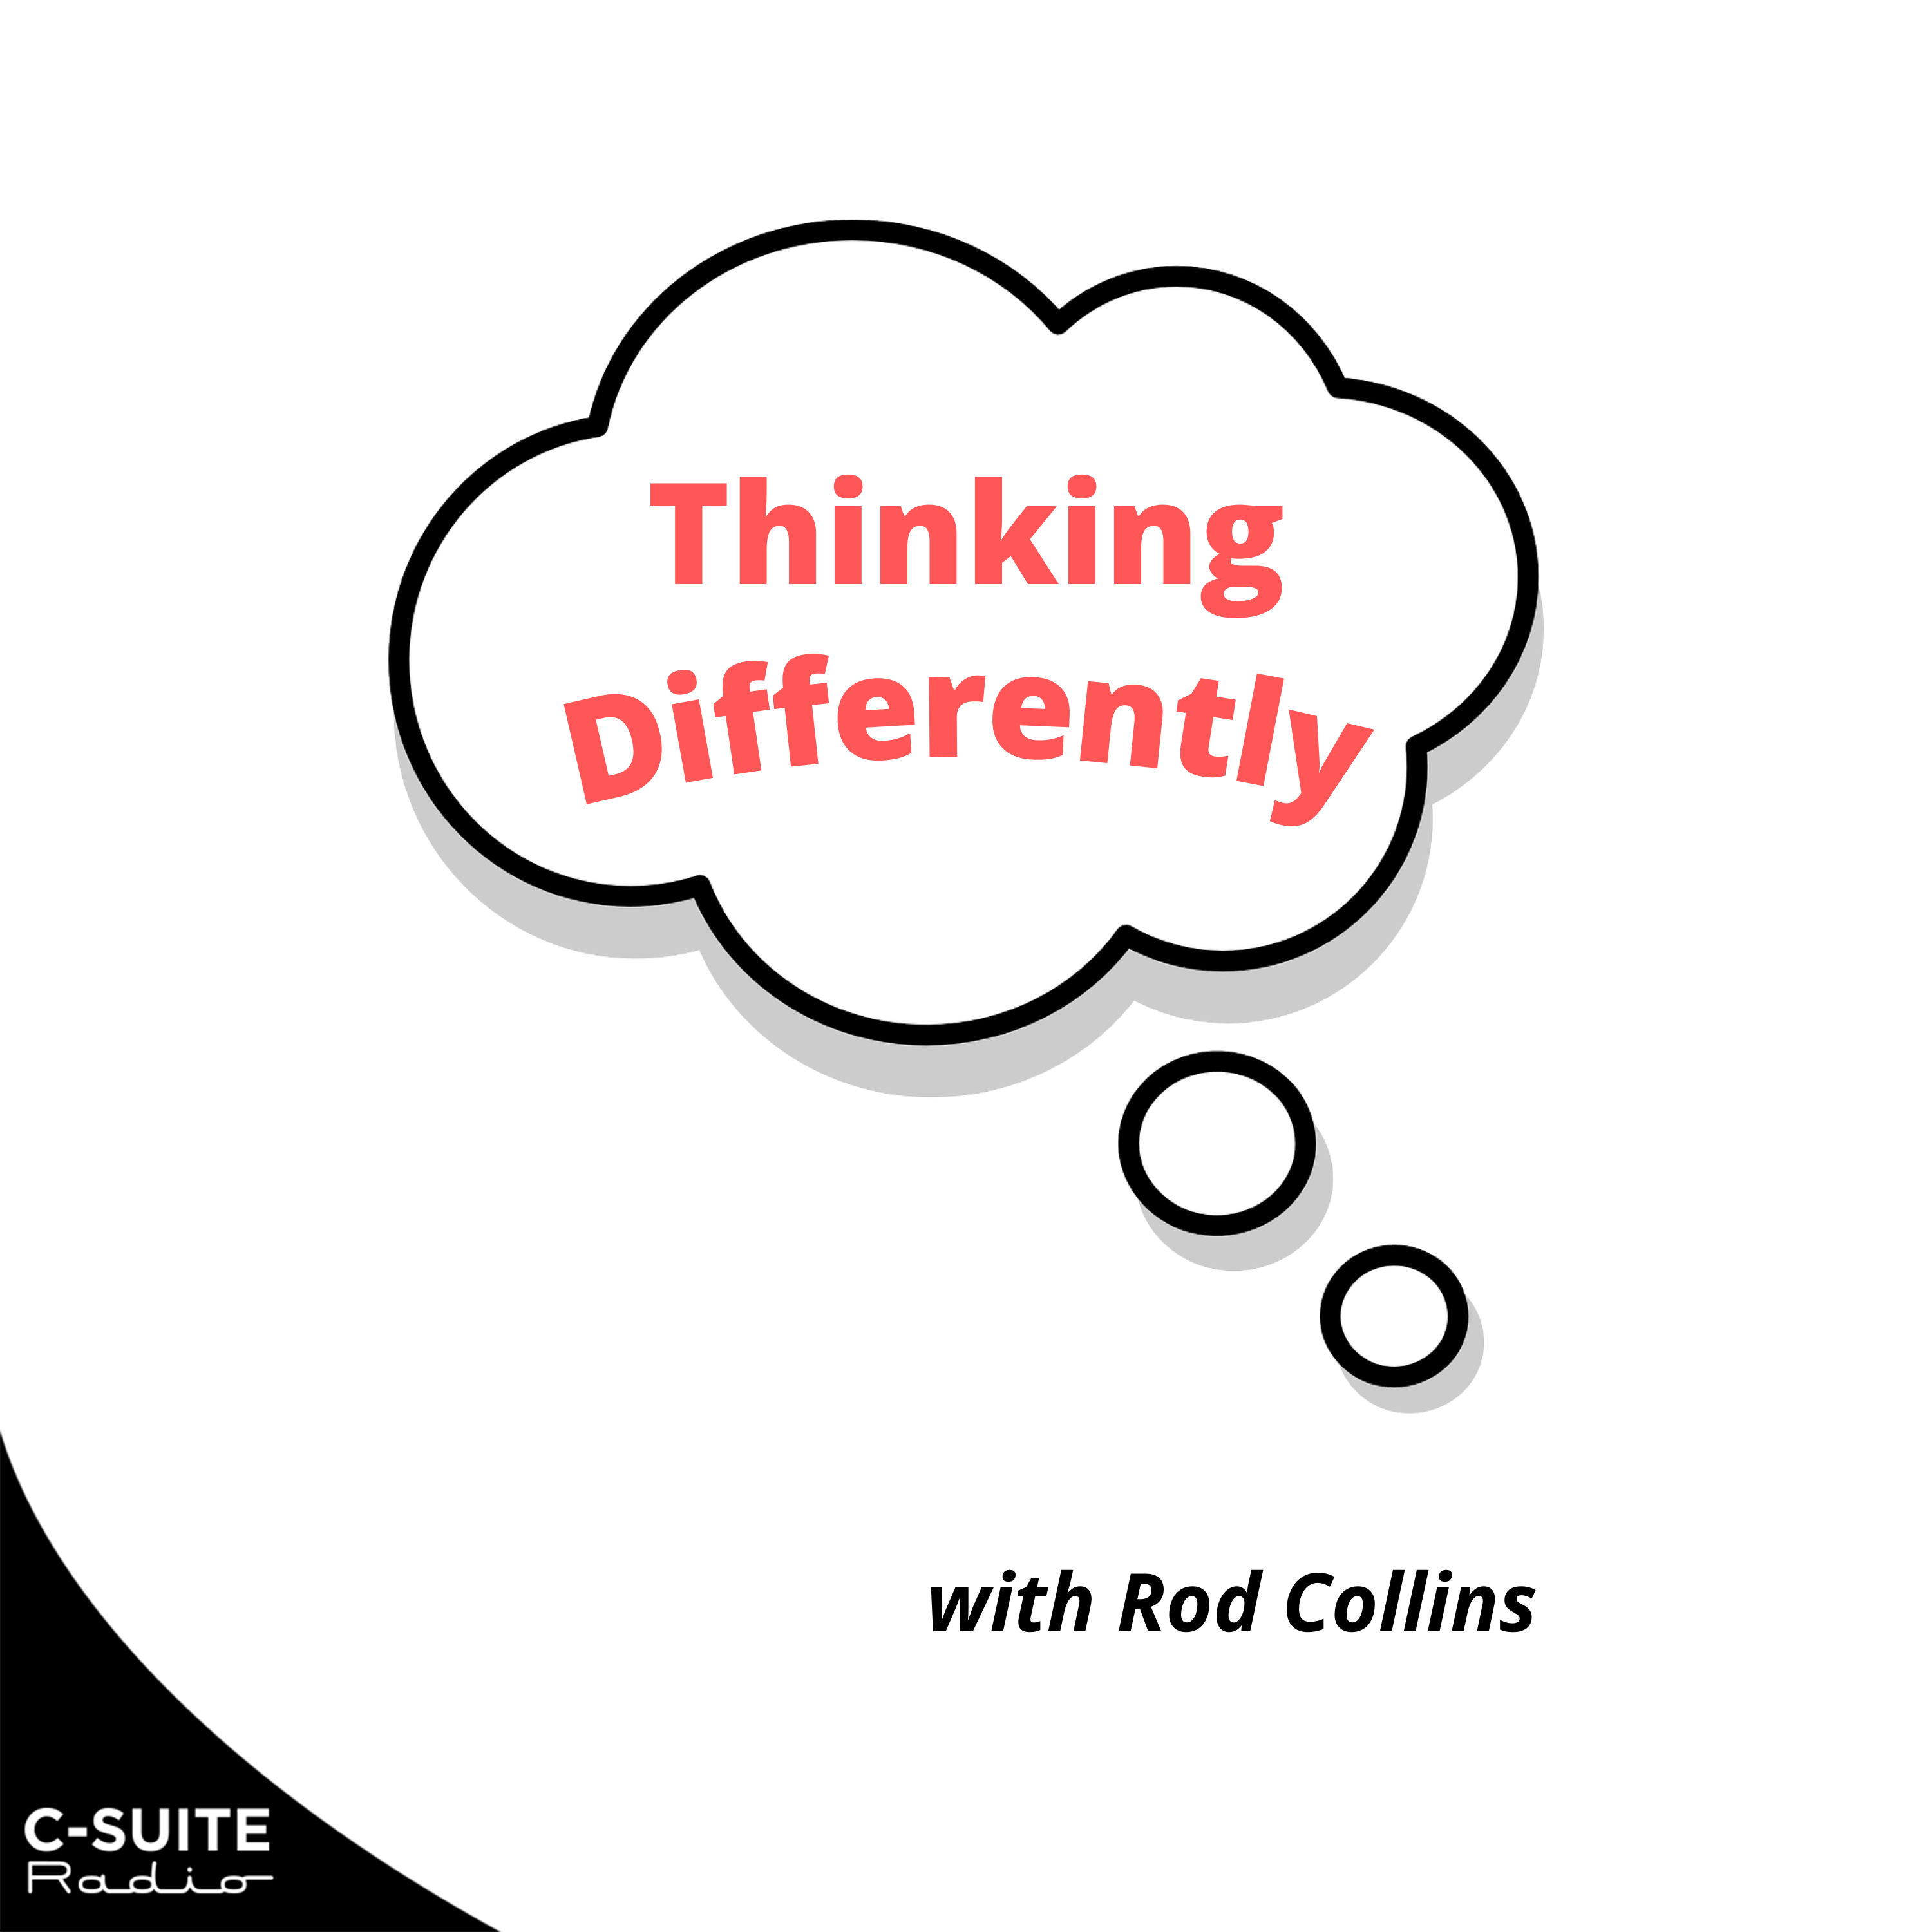 Thinking Differently with Rod Collins